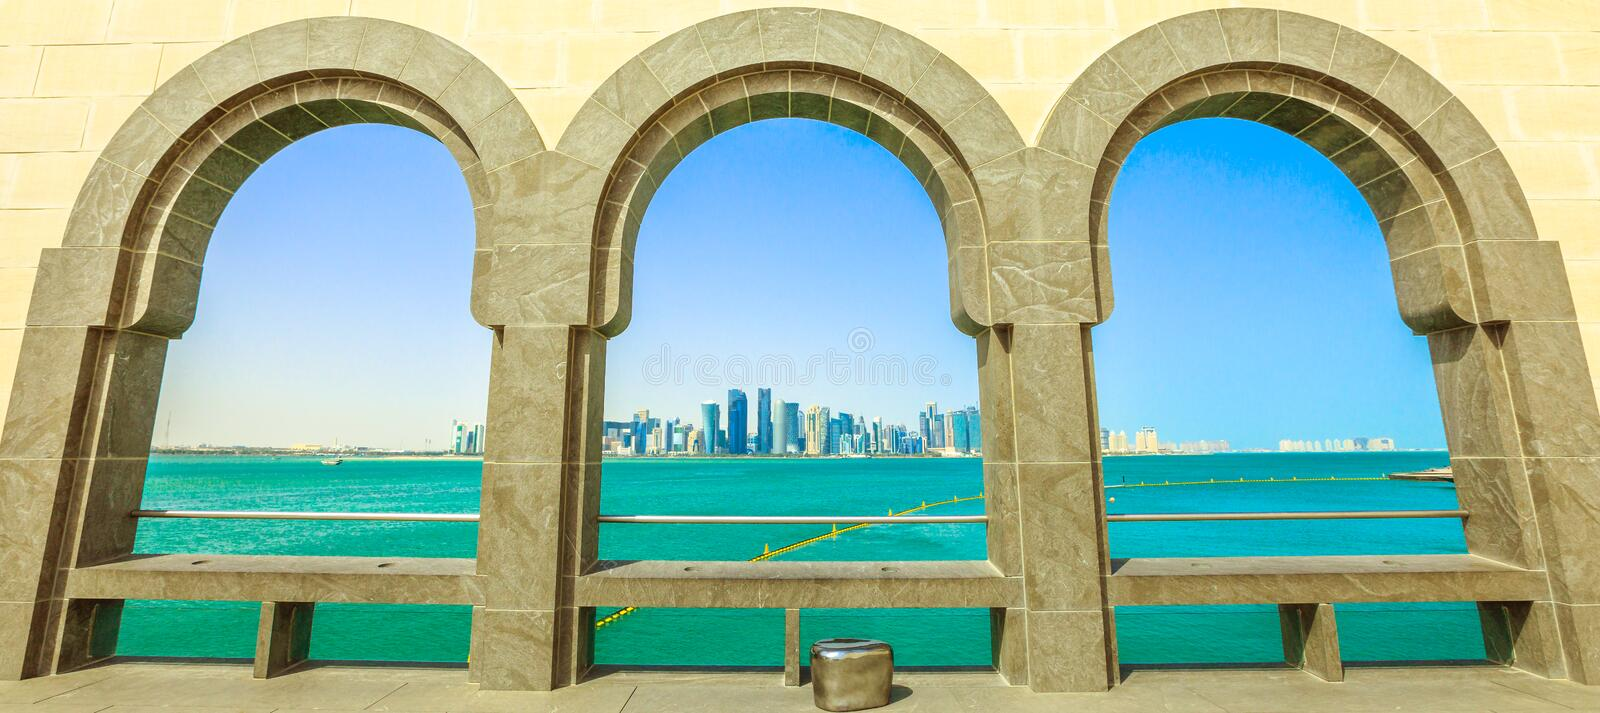 Doha West Bay panorama. Panorama of Doha West Bay skyline through arched windows opening view on Doha Bay. Doha`s waterfront near Corniche. Doha in Qatar royalty free stock photos